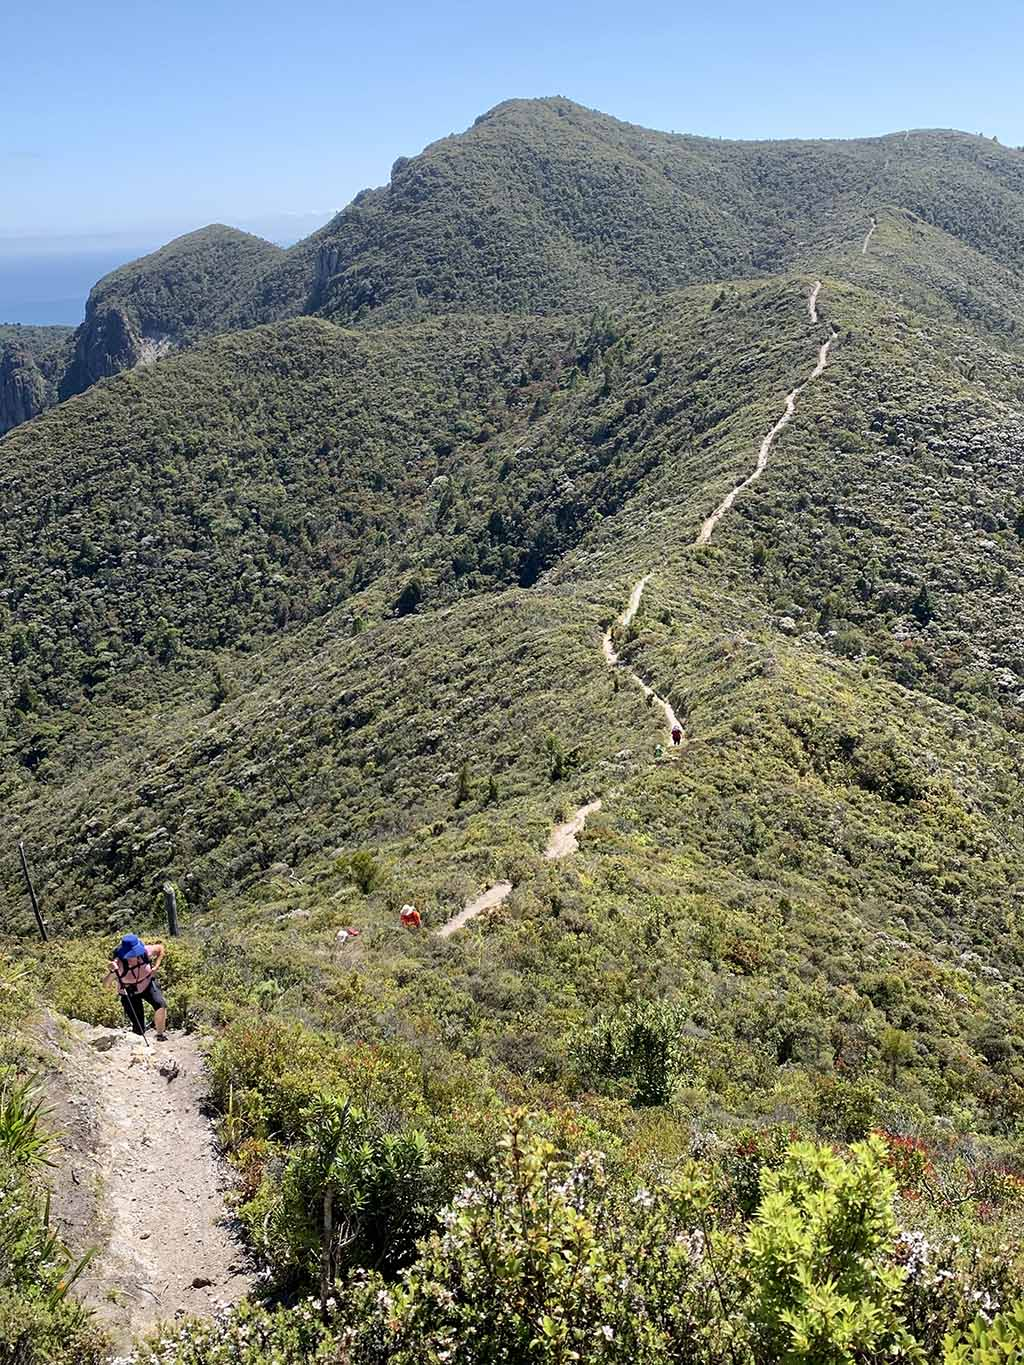 Climbing Mt Hobson on Great Barrier Island